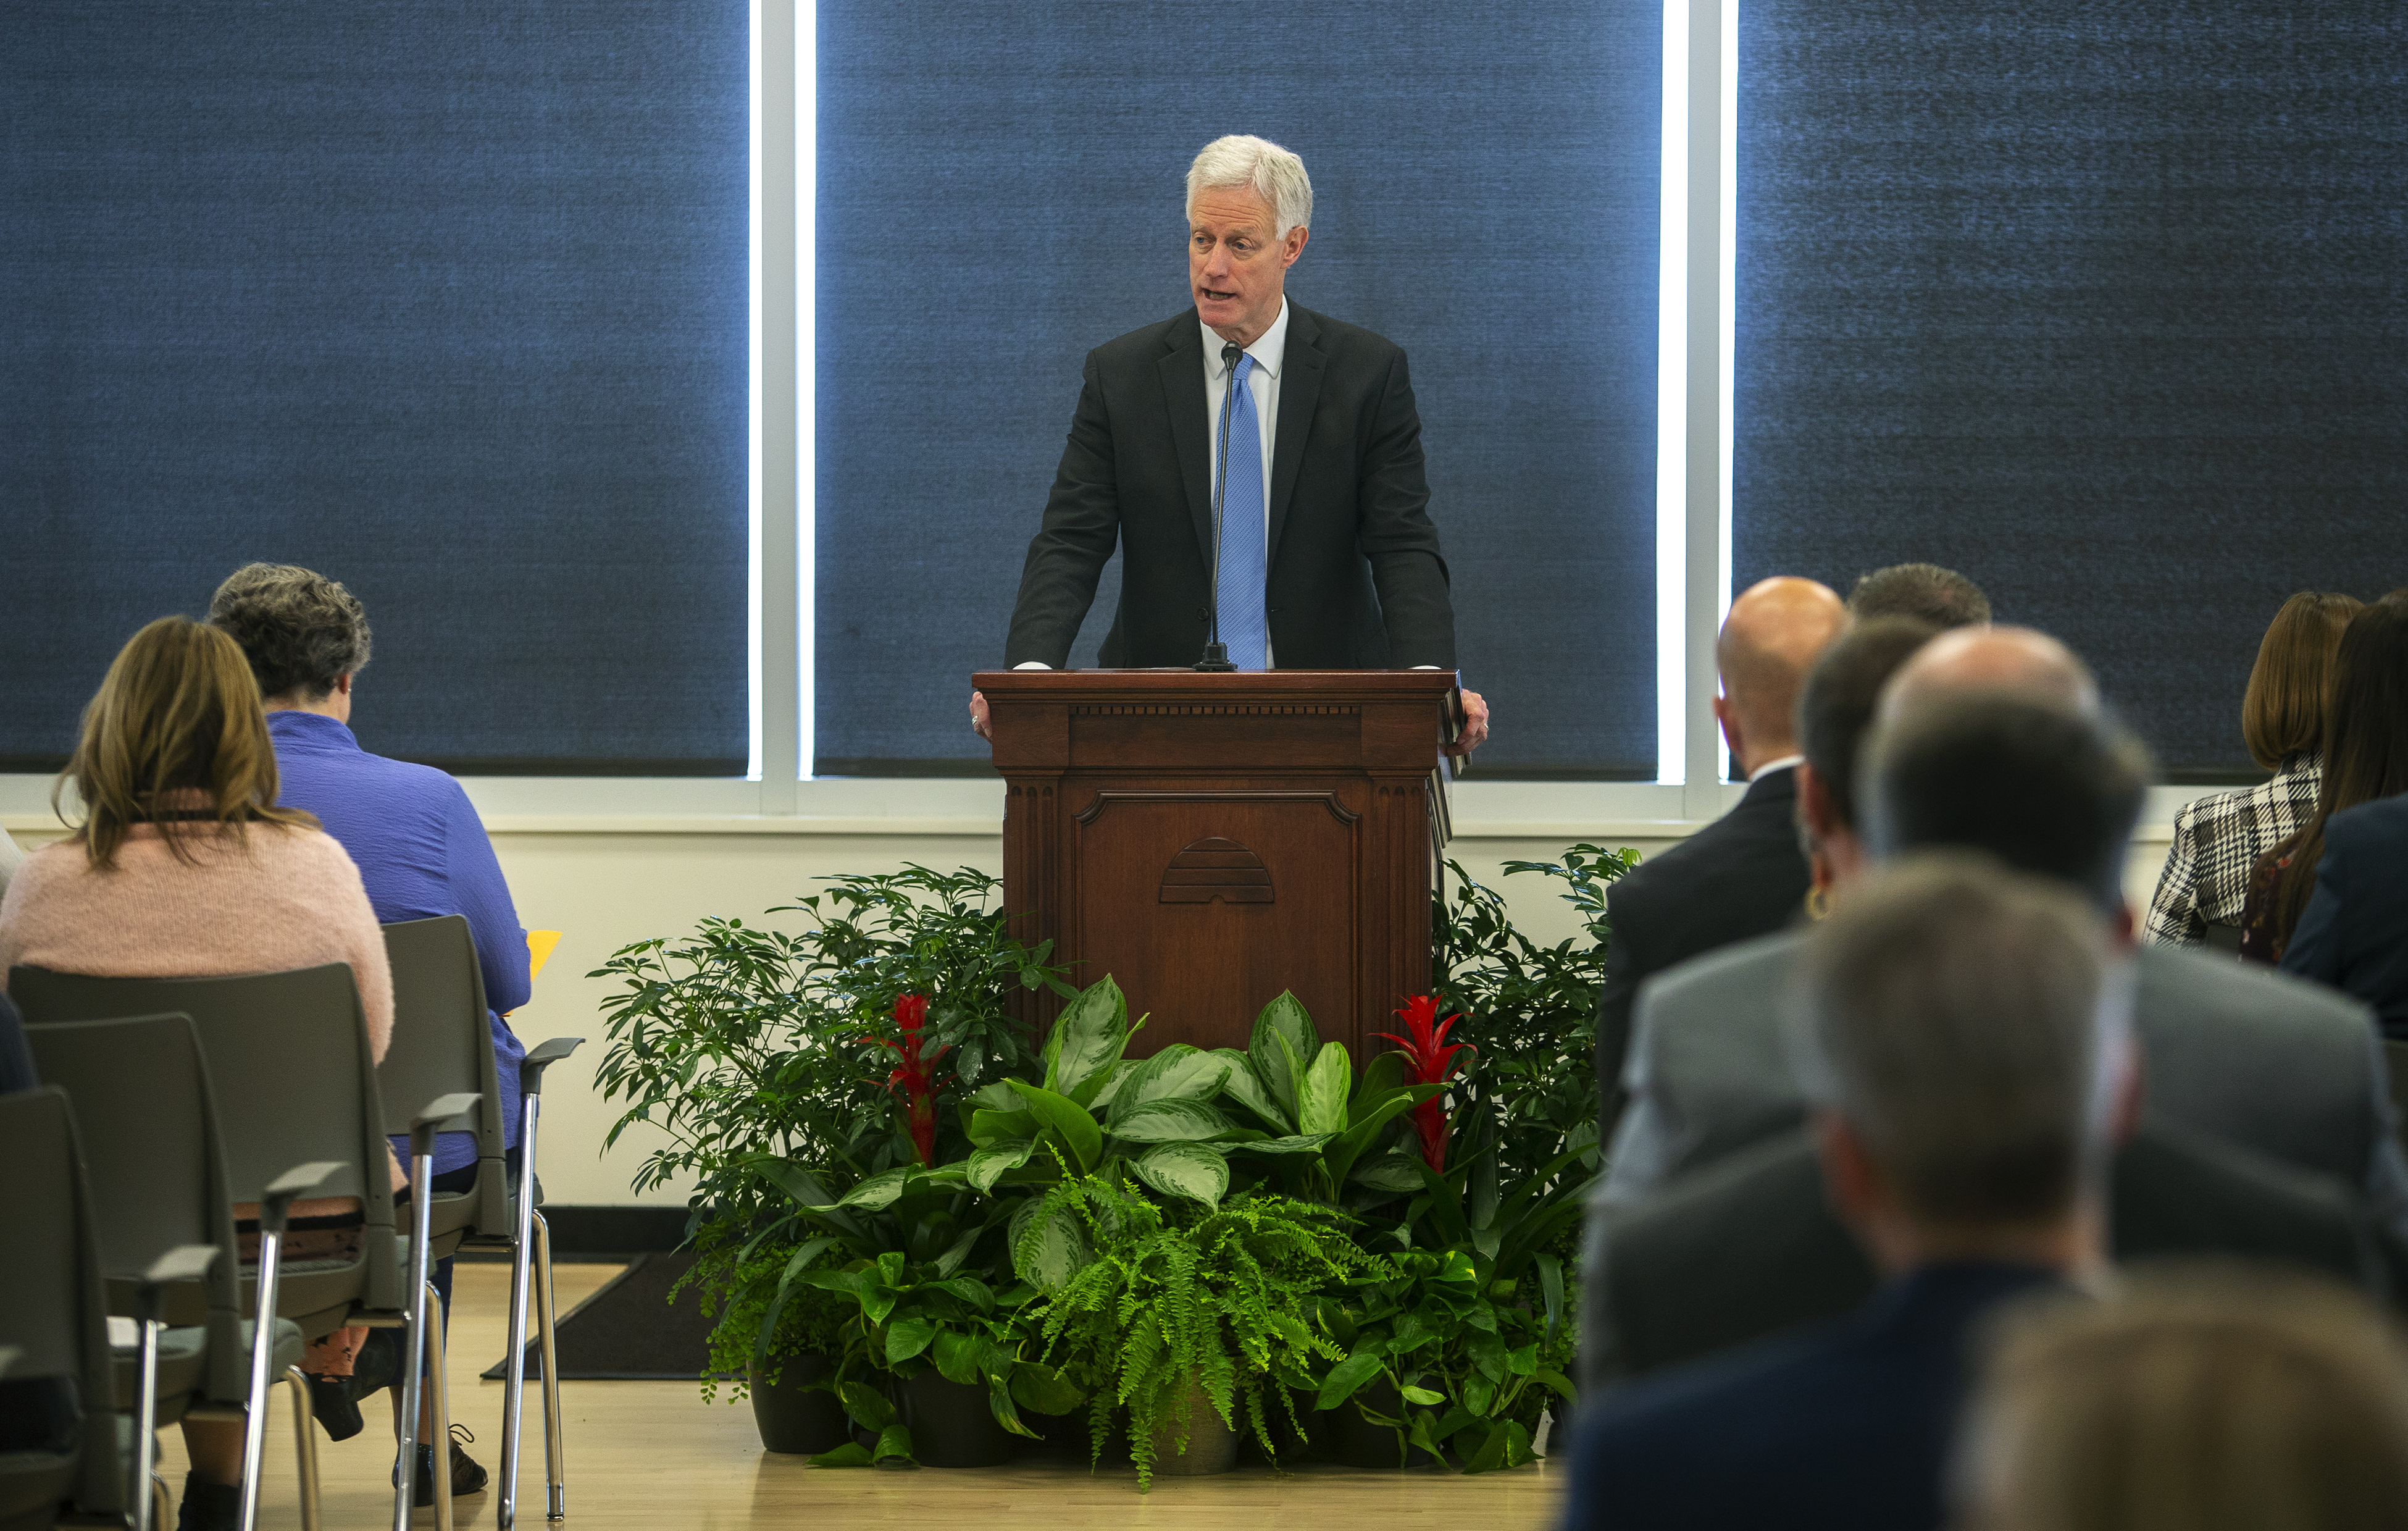 BYU President Kevin J Worthen conducts the meeting prior to Elder Ulisses Soares of the Quorum of the Twelve Apostles speaking and giving the rededication prayer for the Caroline Hemenway Harman Building at BYU in Provo, Utah, on Tuesday, Feb. 5, 2019.